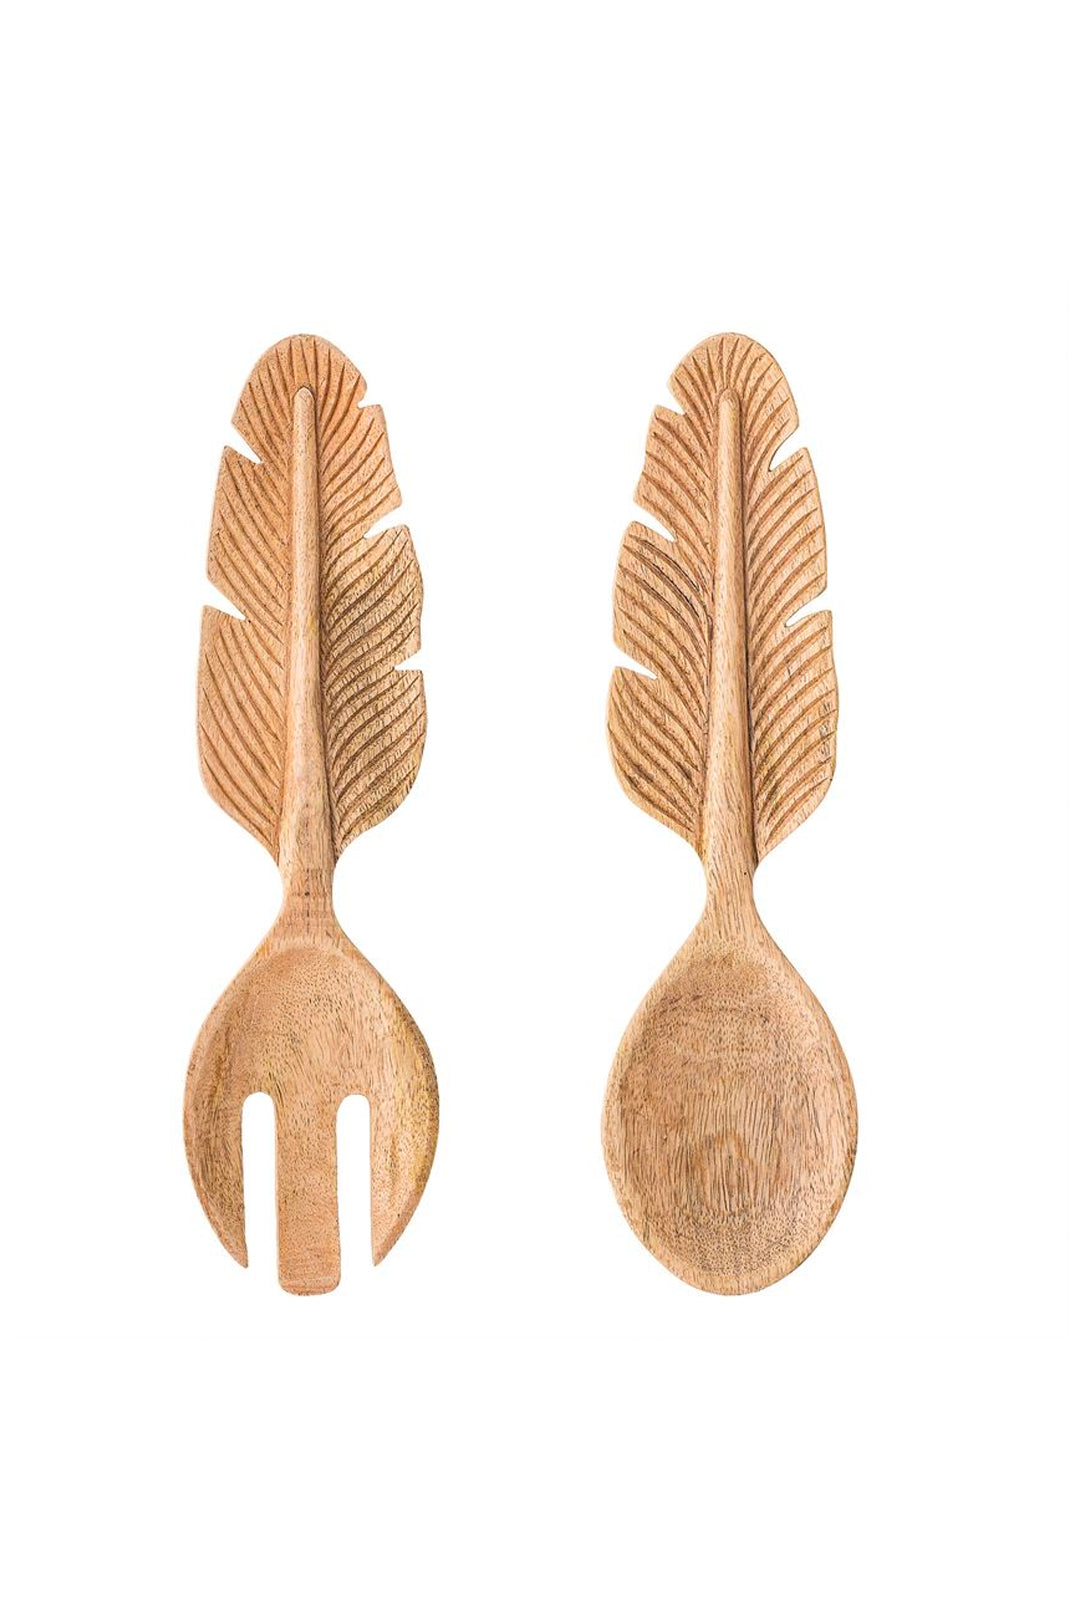 Mango Wood Salad Servers w/Feather Handle, Set of 2